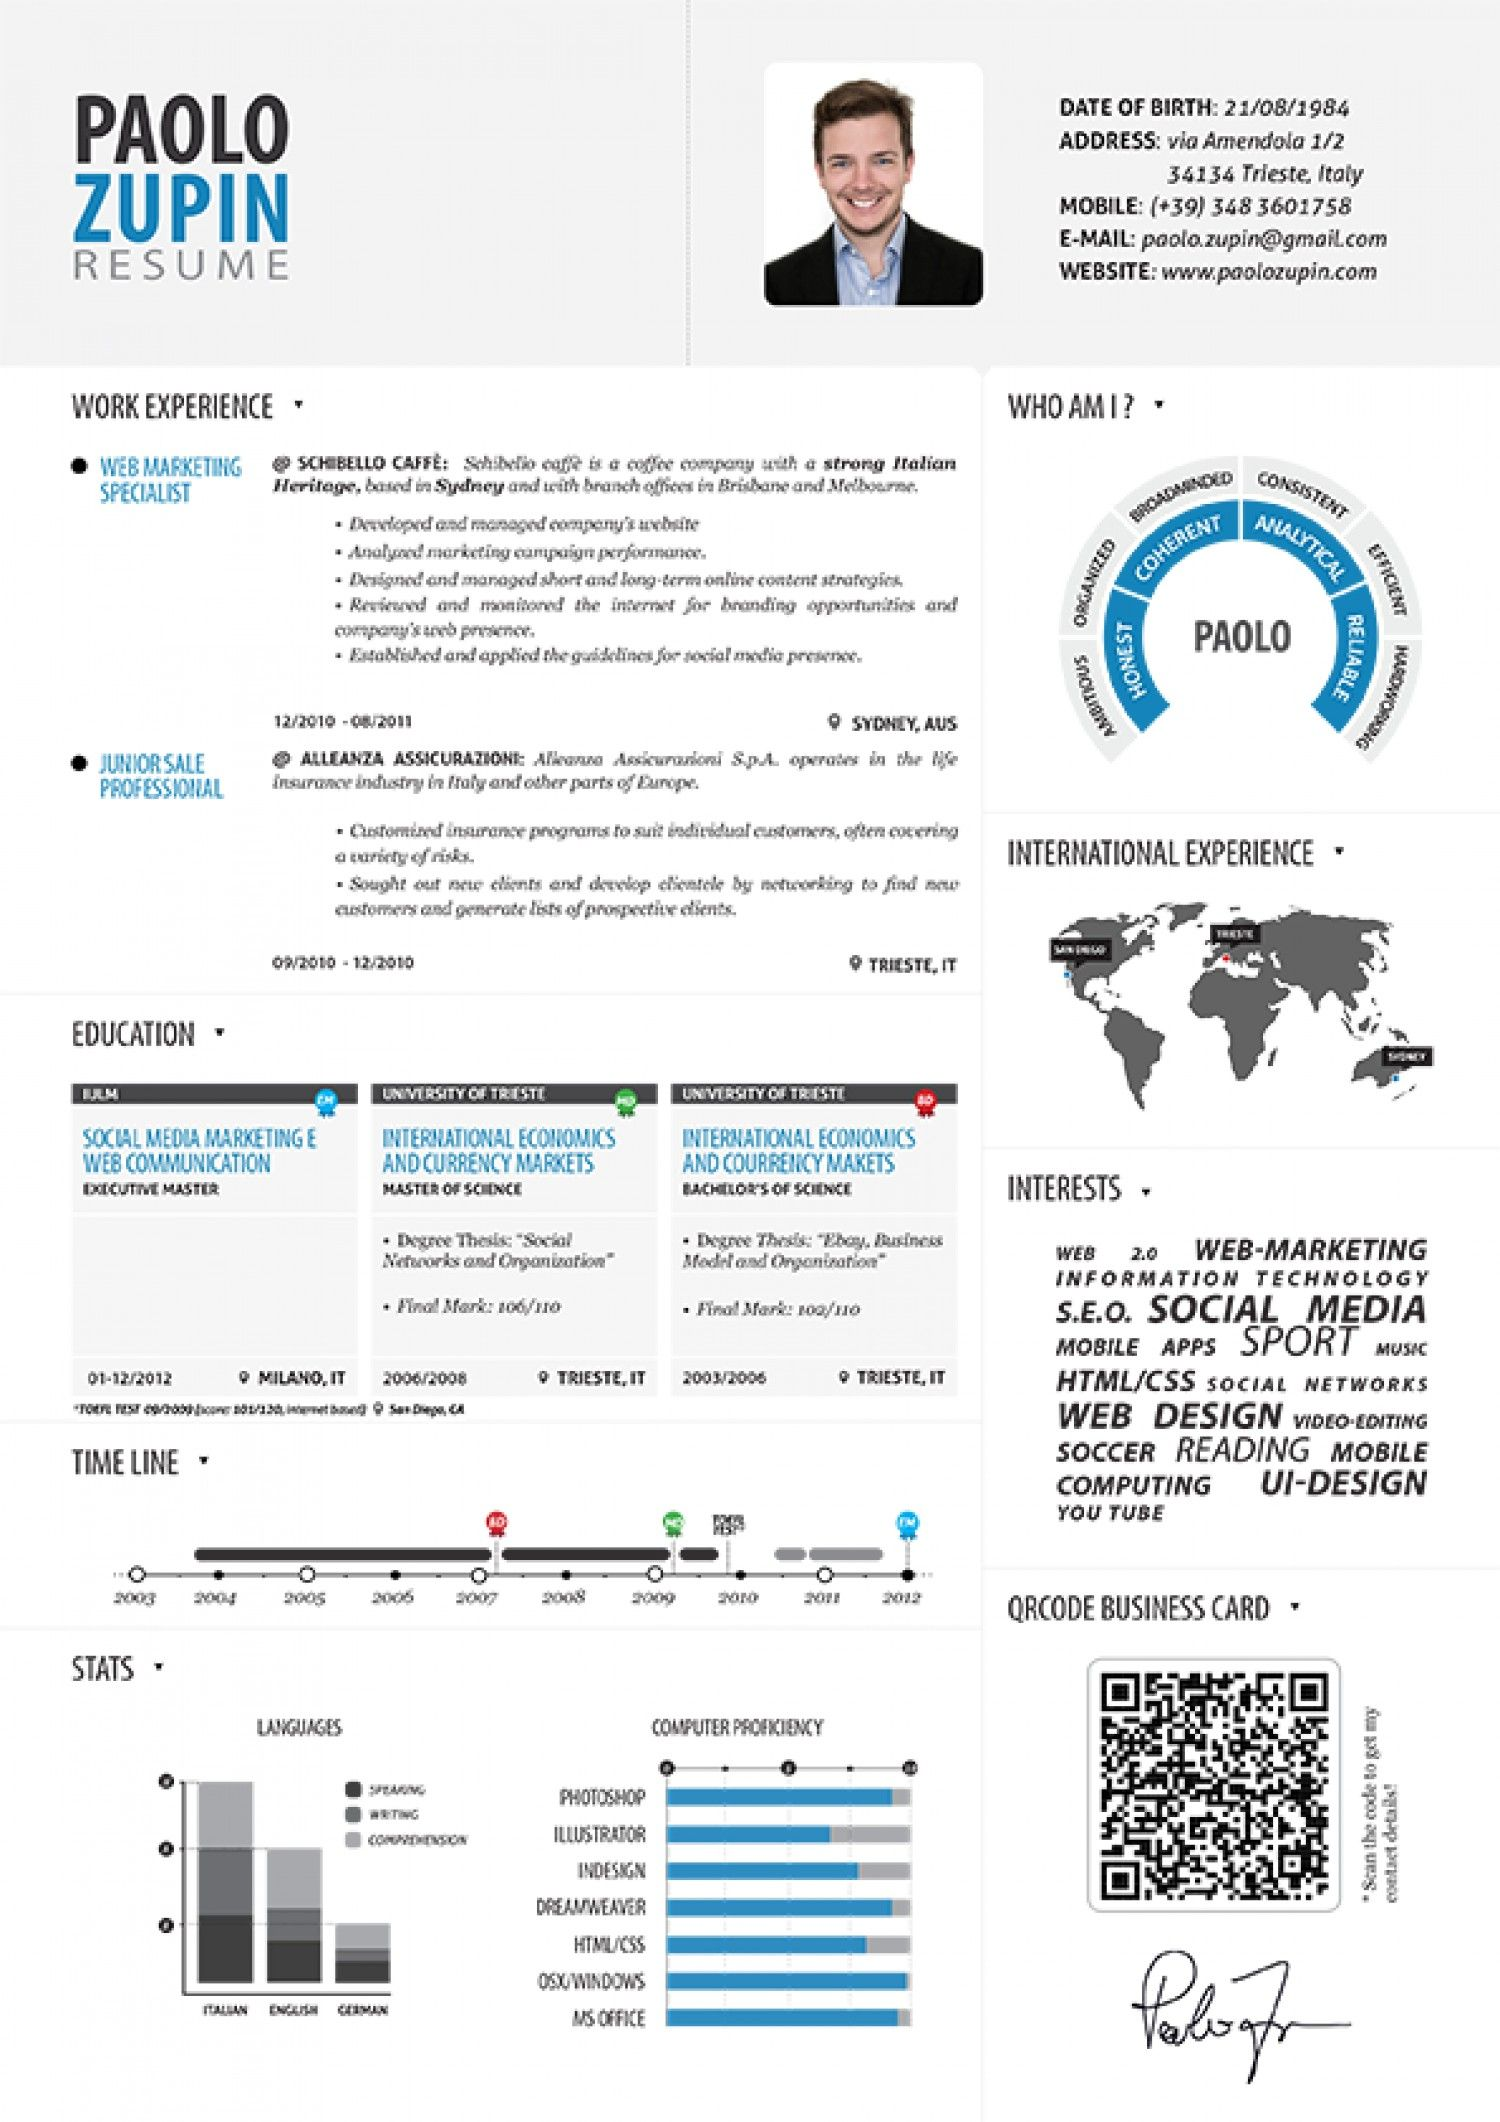 Opposenewapstandardsus  Surprising  Images About Resume  Cv Design On Pinterest  Infographic  With Marvelous  Images About Resume  Cv Design On Pinterest  Infographic Resume Resume And Resume Design With Appealing Consultant Resume Also Cover Letter Example For Resume In Addition Resume Template For High School Student And Resume References Template As Well As Resume Database Additionally Download Free Resume Templates From Pinterestcom With Opposenewapstandardsus  Marvelous  Images About Resume  Cv Design On Pinterest  Infographic  With Appealing  Images About Resume  Cv Design On Pinterest  Infographic Resume Resume And Resume Design And Surprising Consultant Resume Also Cover Letter Example For Resume In Addition Resume Template For High School Student From Pinterestcom